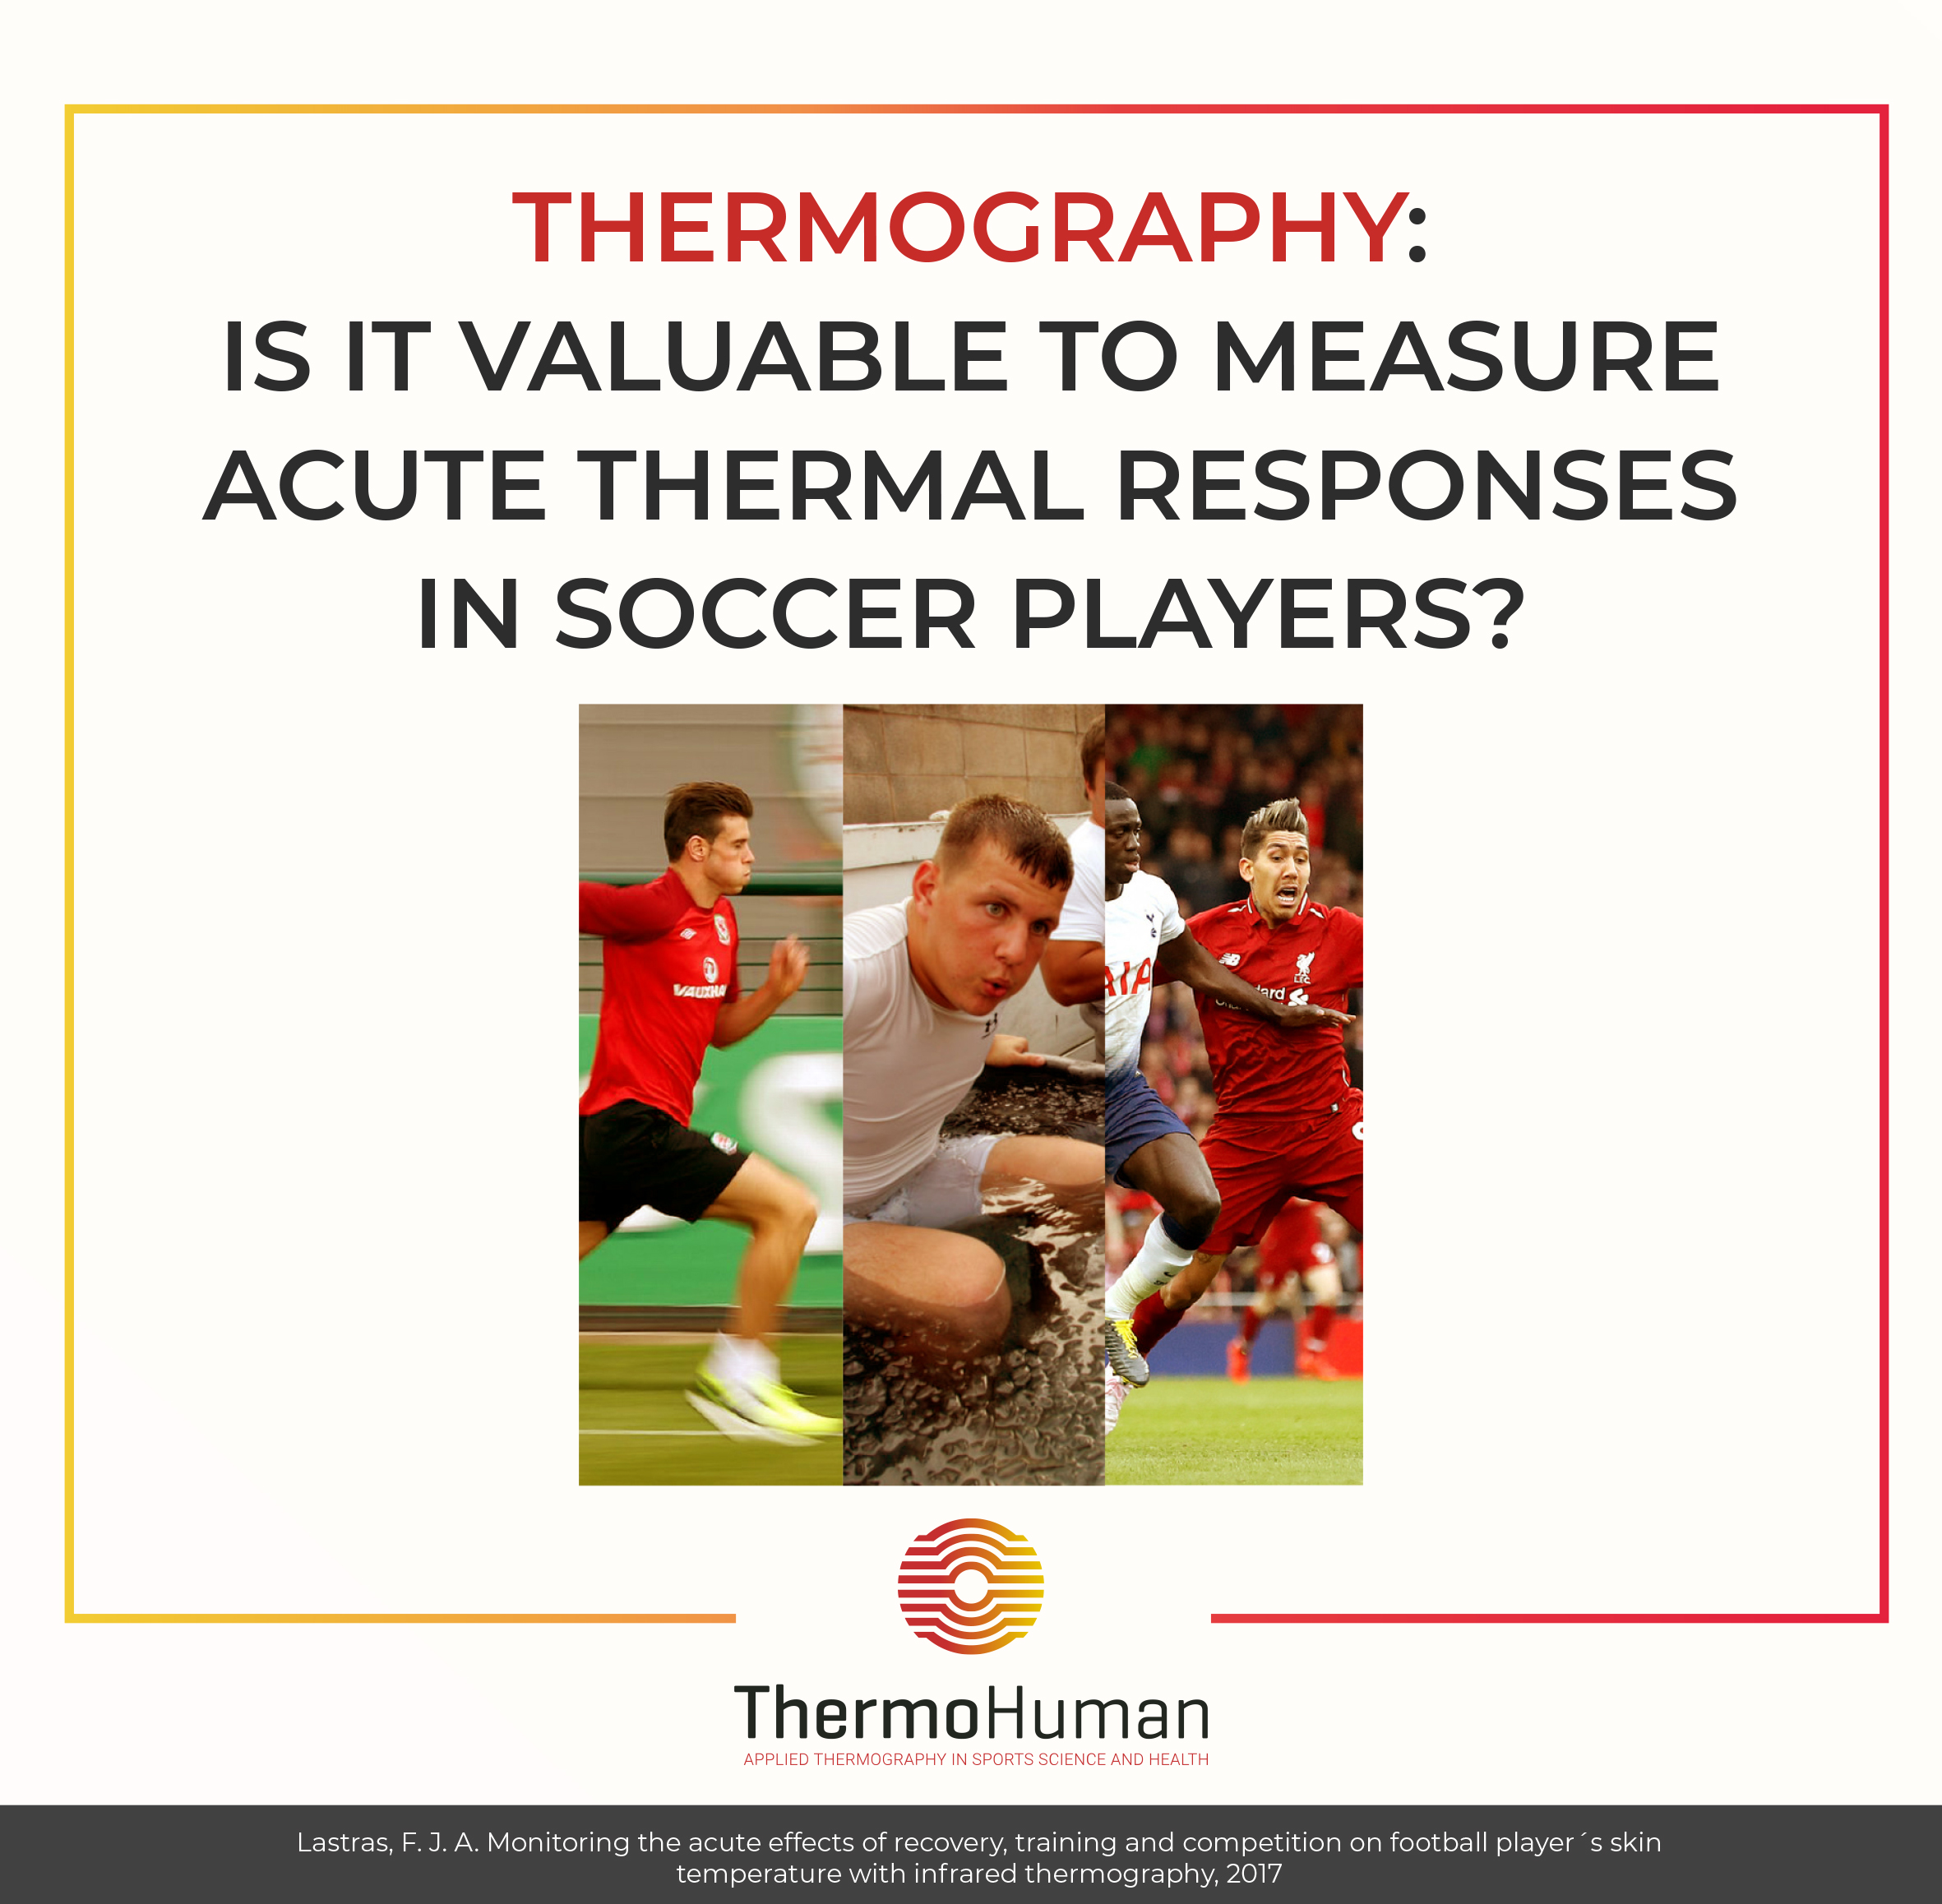 Thermography:  Is it valuable to measure acute thermal responses in Soccer players?